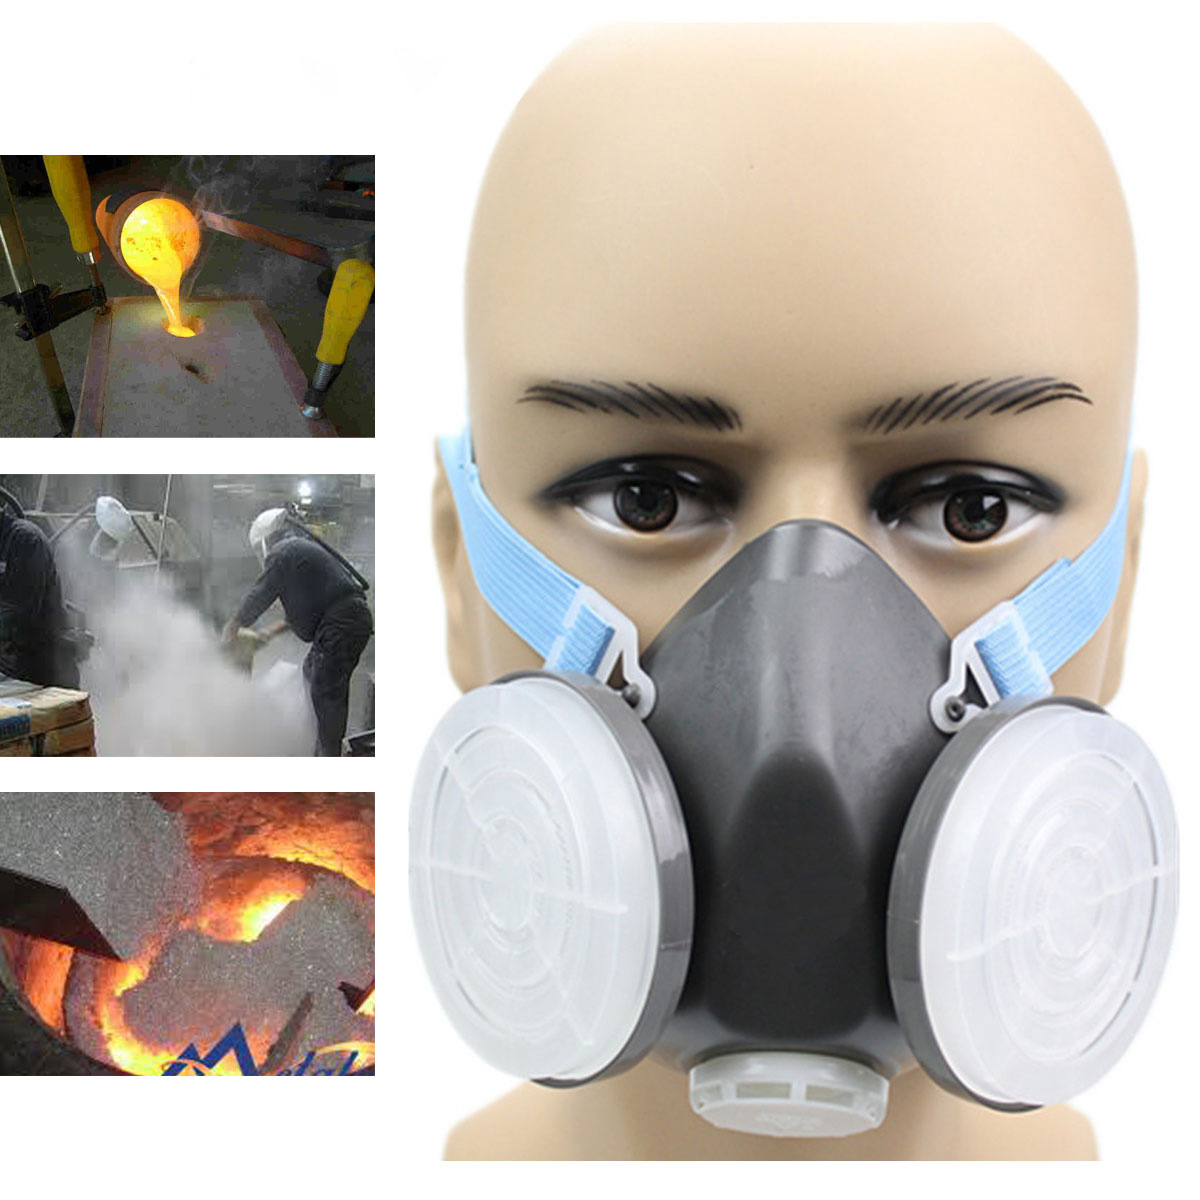 Black Gas Mask Emergency Survival Safety Respiratory Gas Mask Anti Dust Paint Respirator Mask With 2 Dual Protection Filter Refreshment Personal Health Care